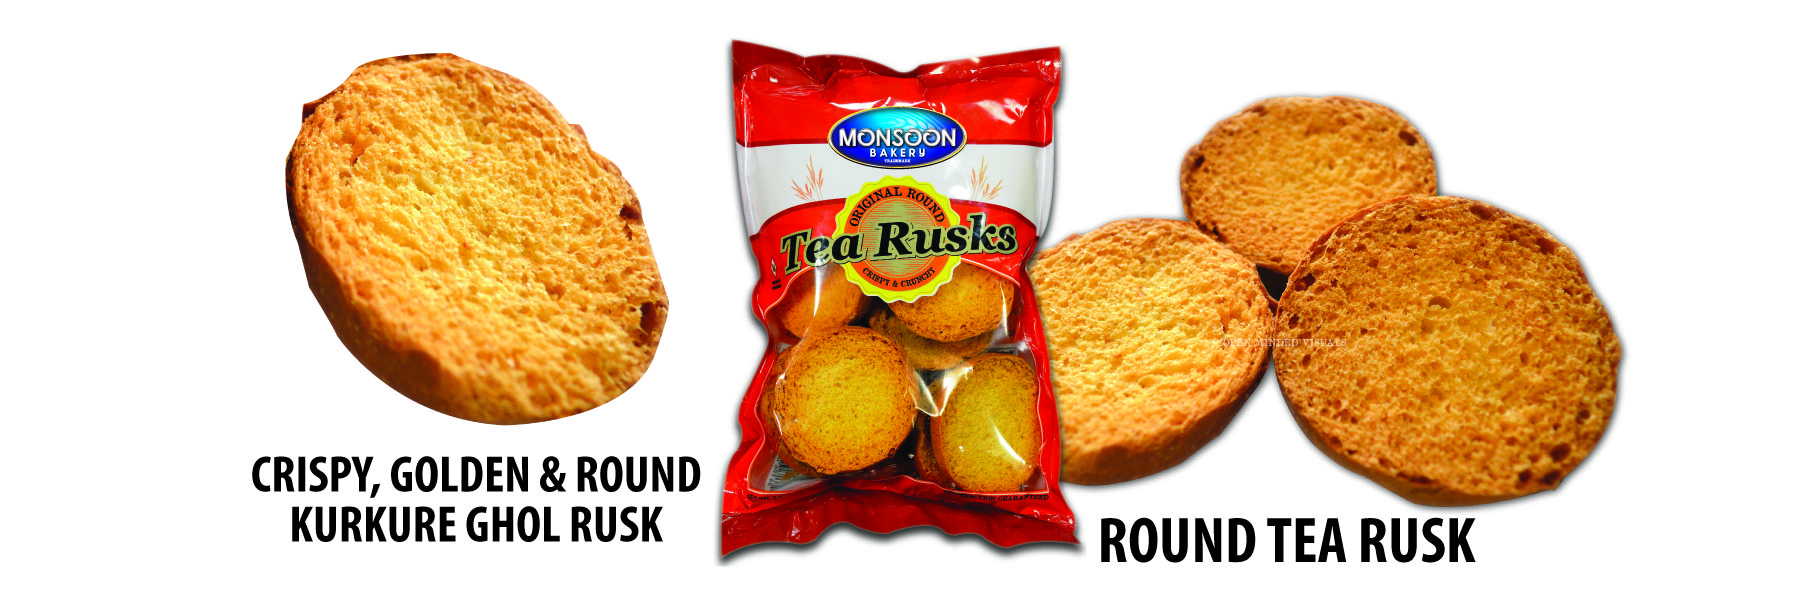 Roun Tea Rusk Fresh.jpg